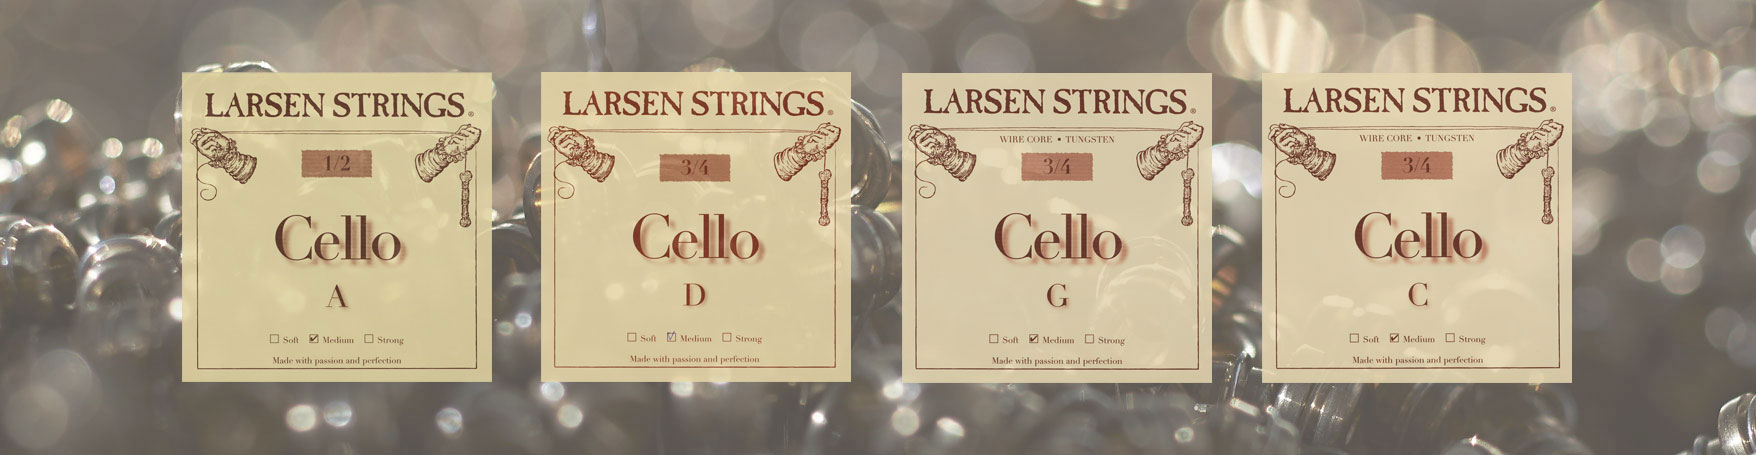 Larsen Fractional Cello strings in smaller sizes